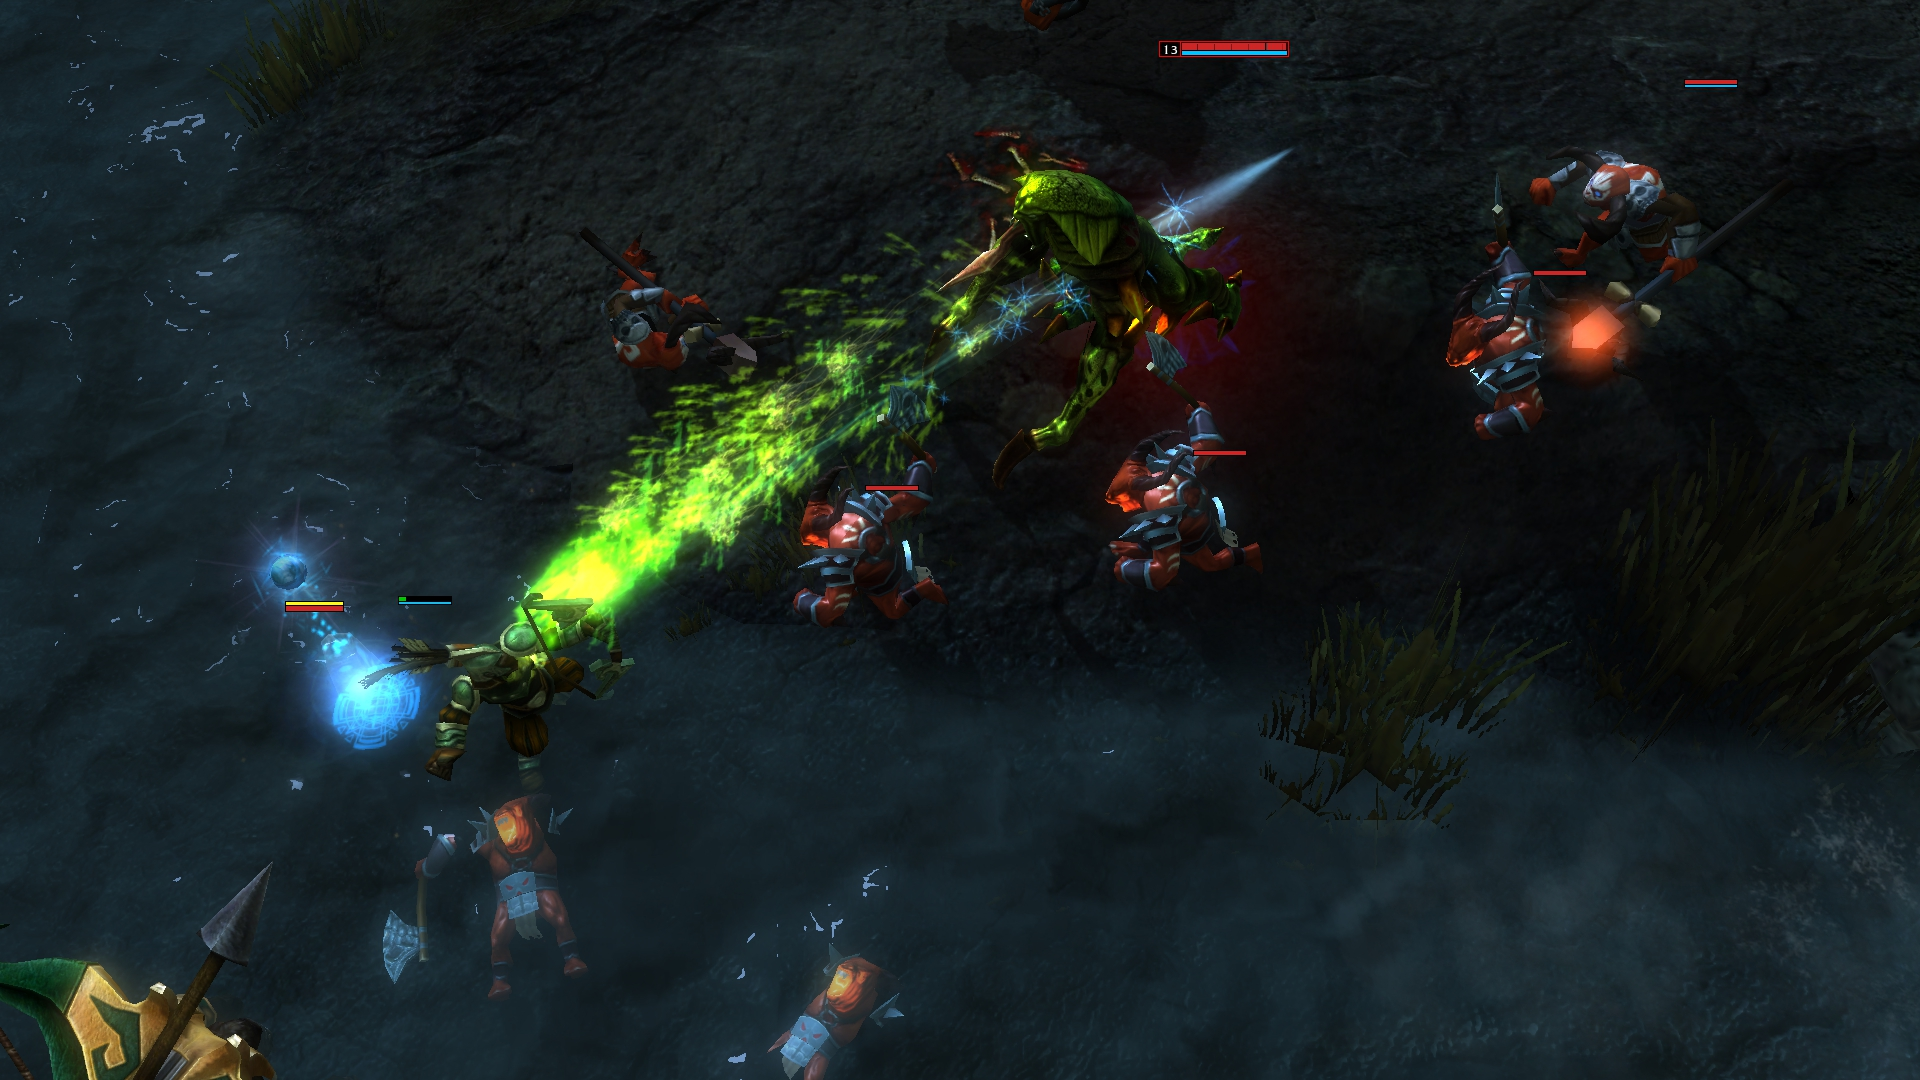 Heroes of Newerth Gameplay Screenshot 1